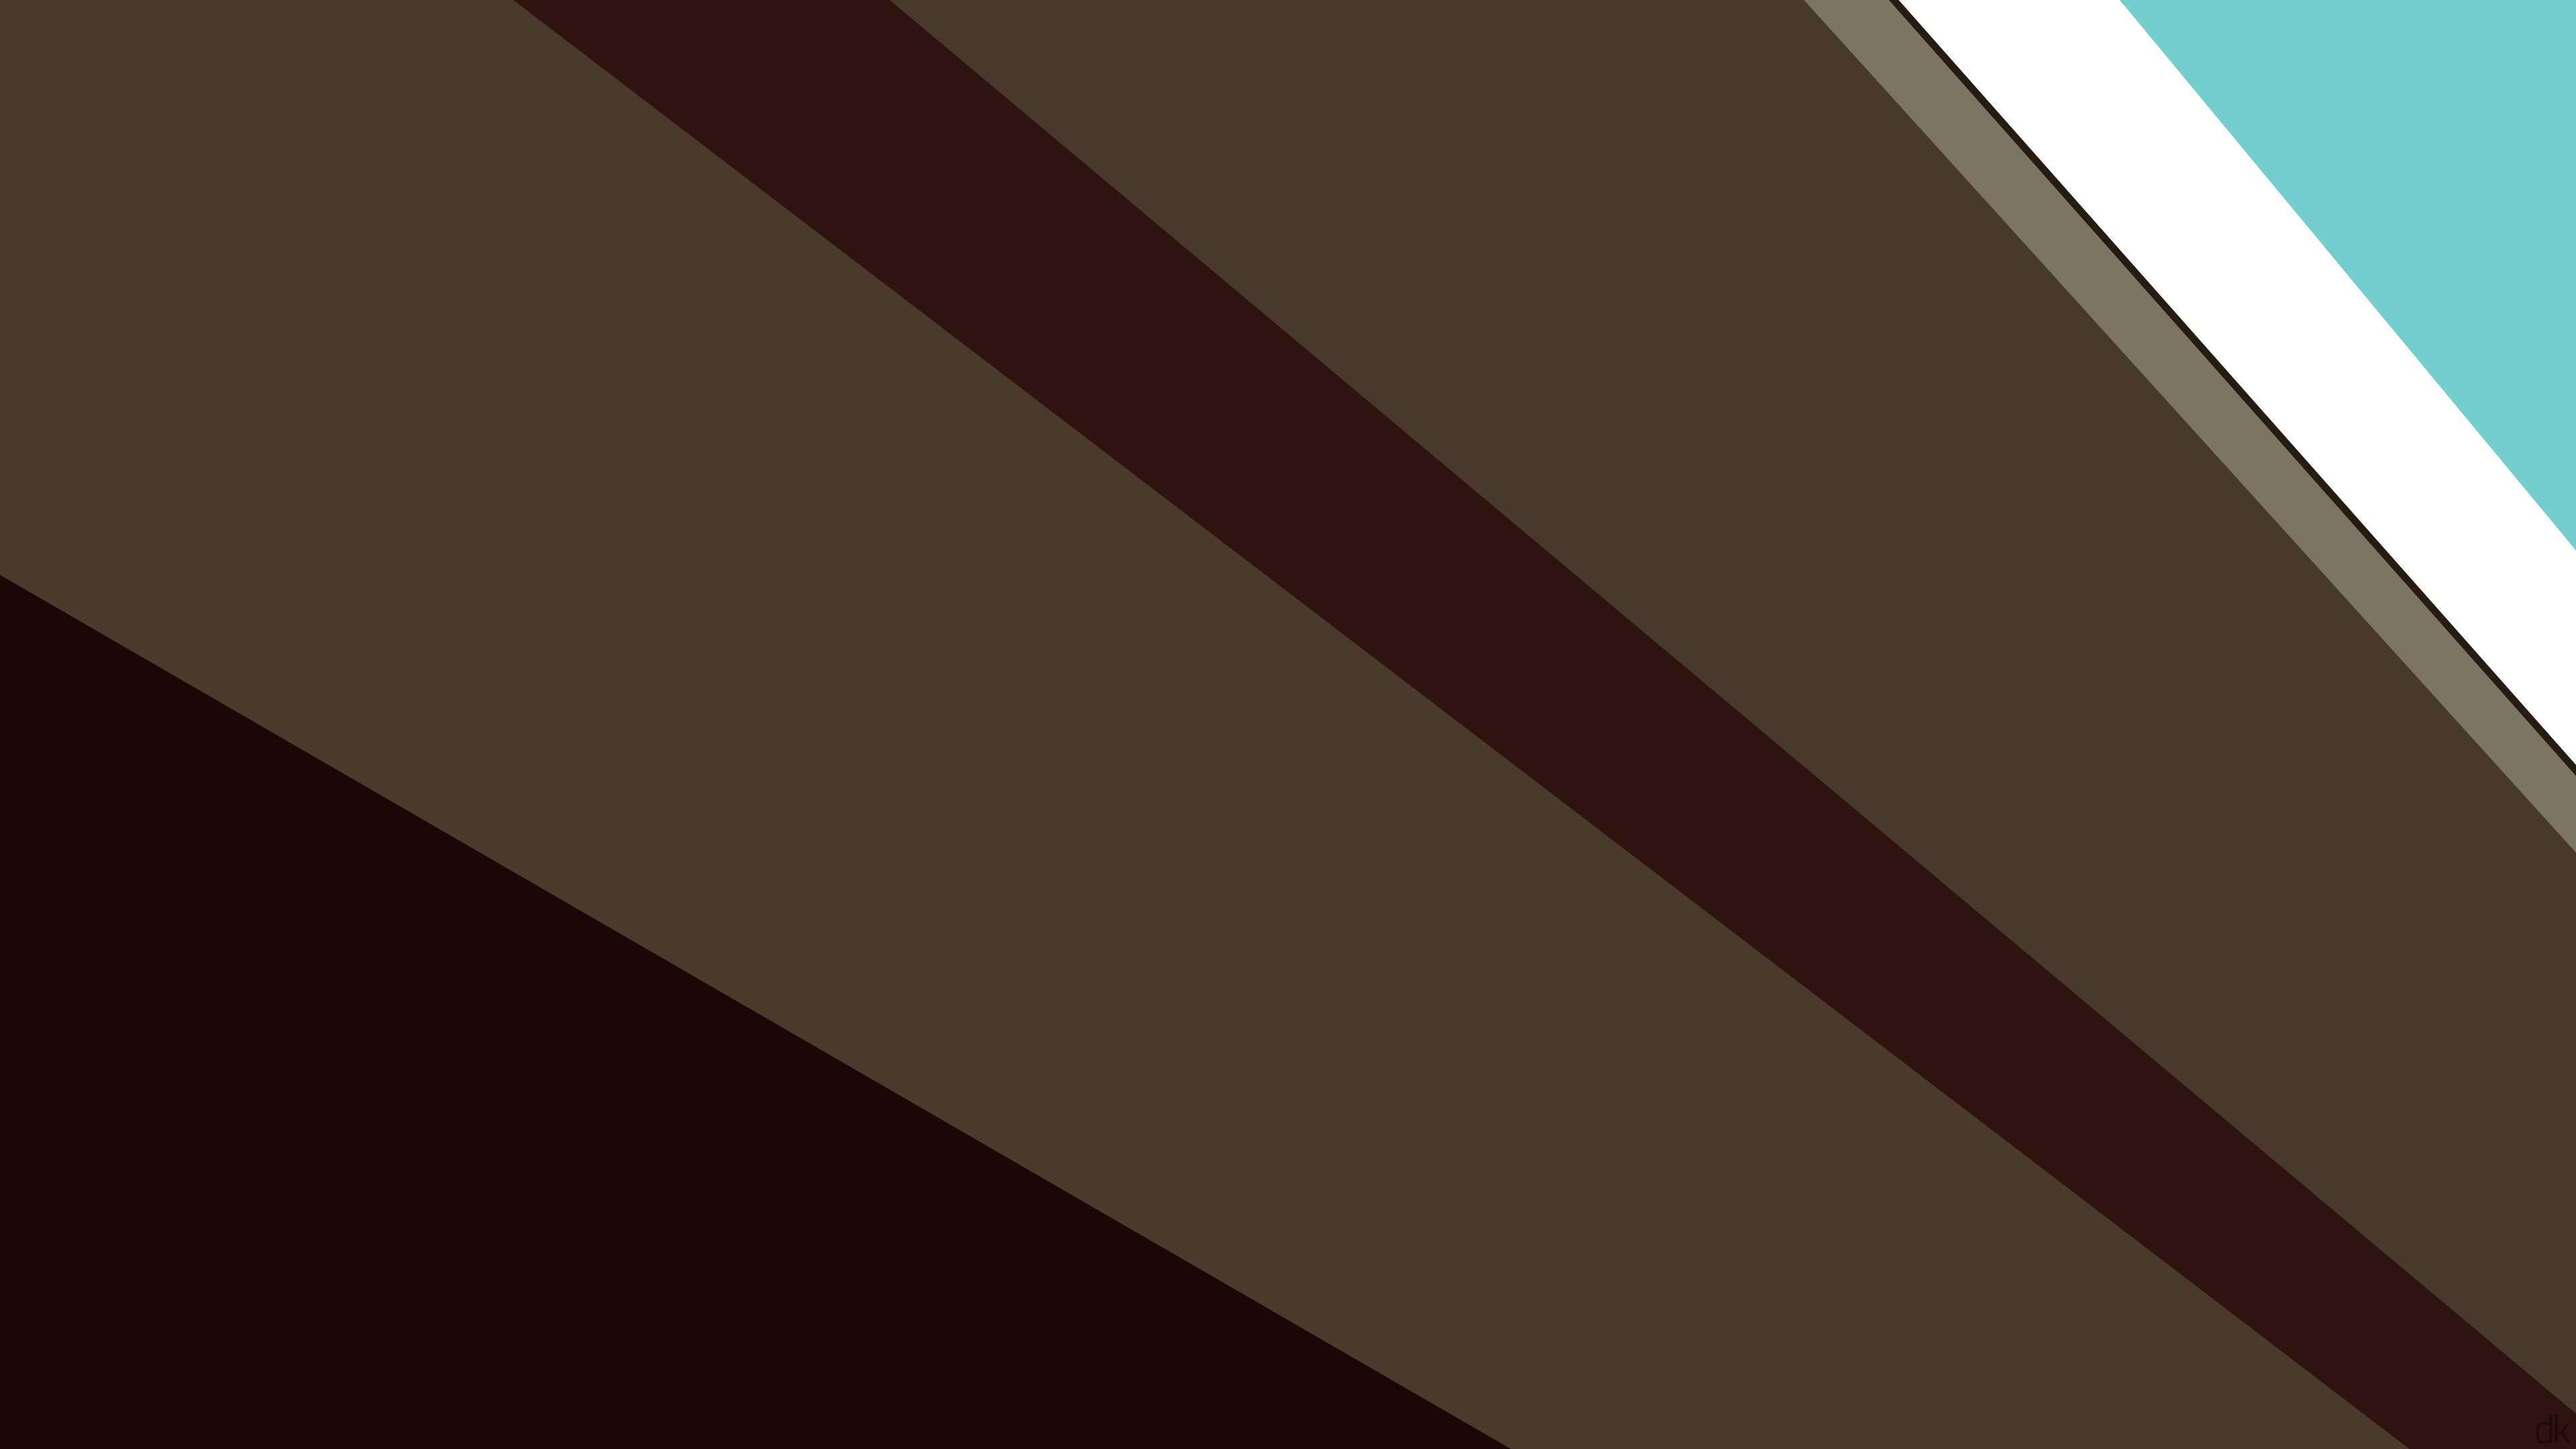 minflat default android l wallpaper 4k by dakoder